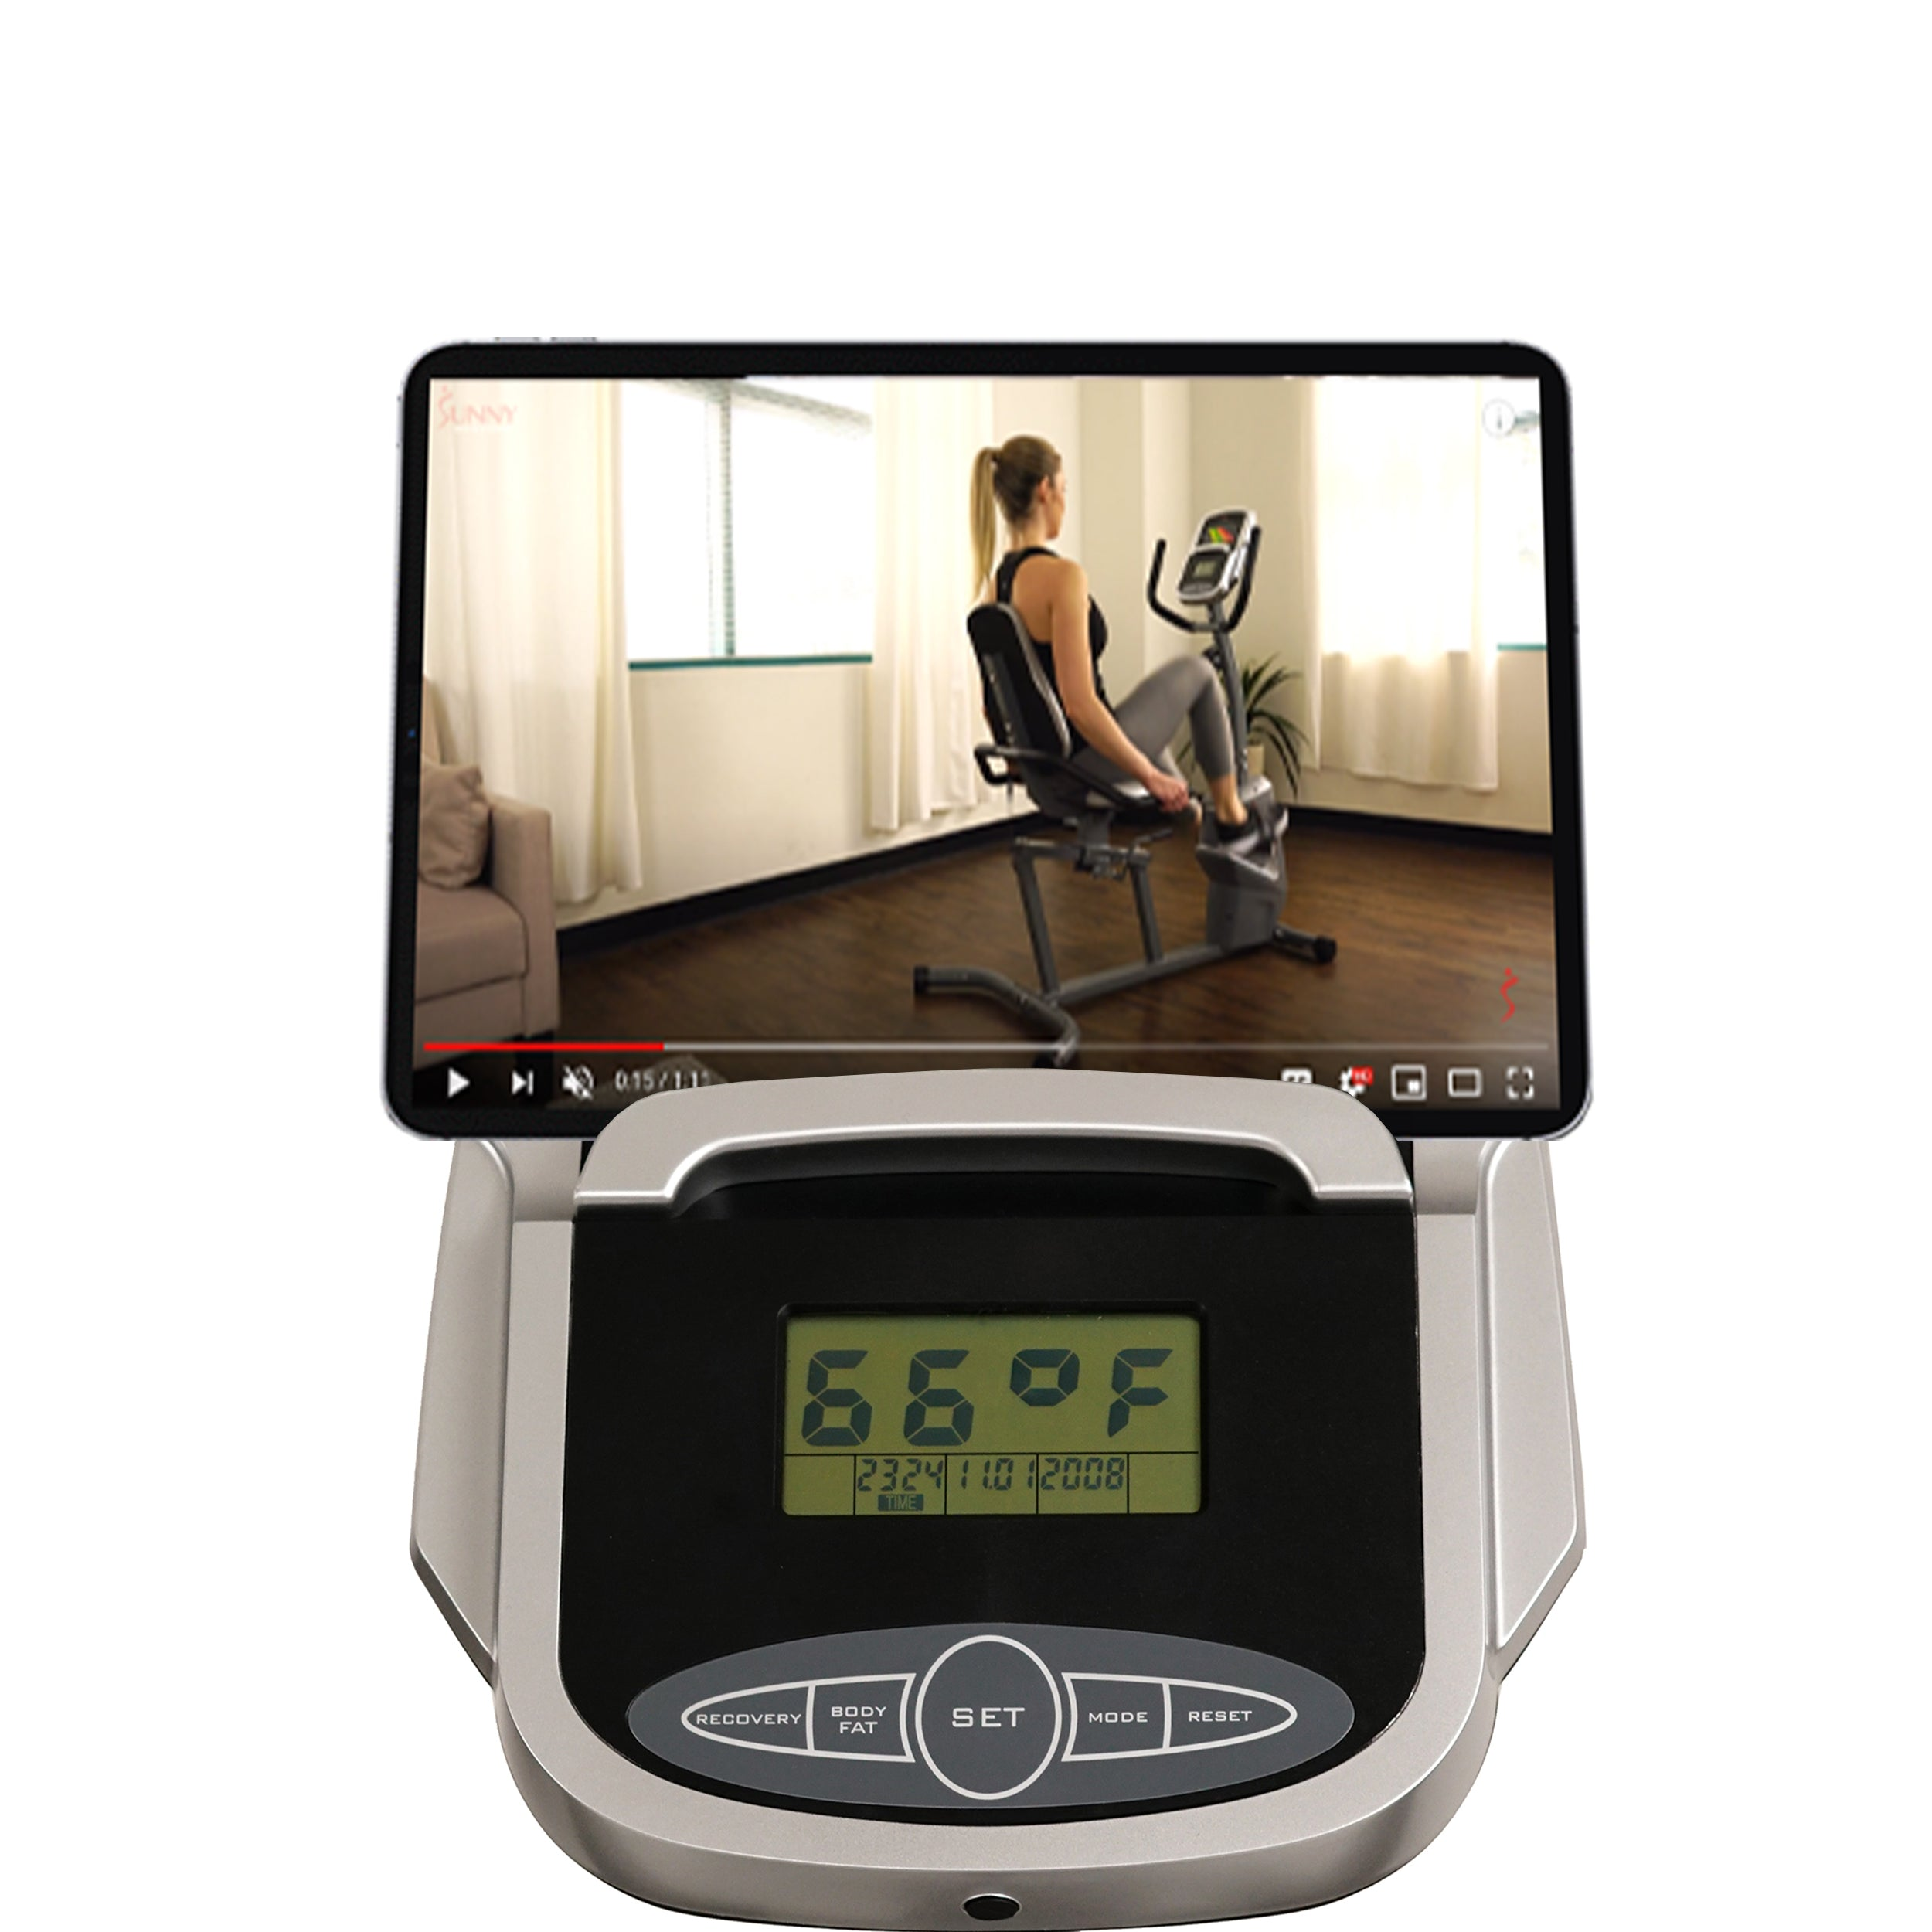 sunny-health-fitness-bikes-magnetic-recumbent-exercise-bike-easy-adjustable-seat-tablet-holder-RPM-pulse-rate-SF-RB4806-monitor